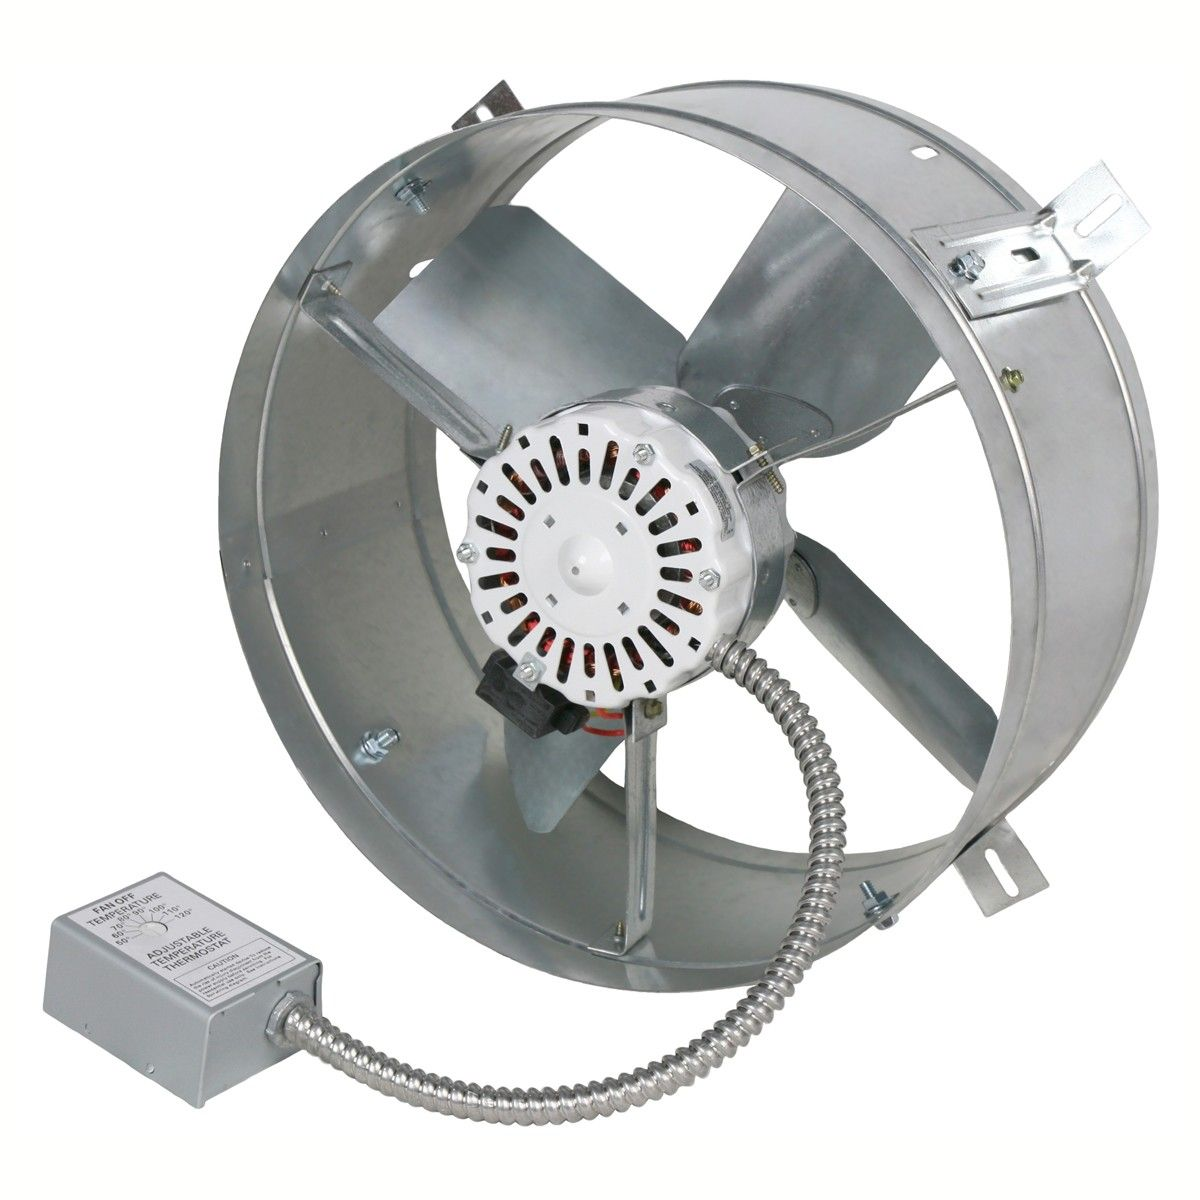 Cook bathroom exhaust fans - Latest Posts Under Bathroom Exhaust Fan Cover